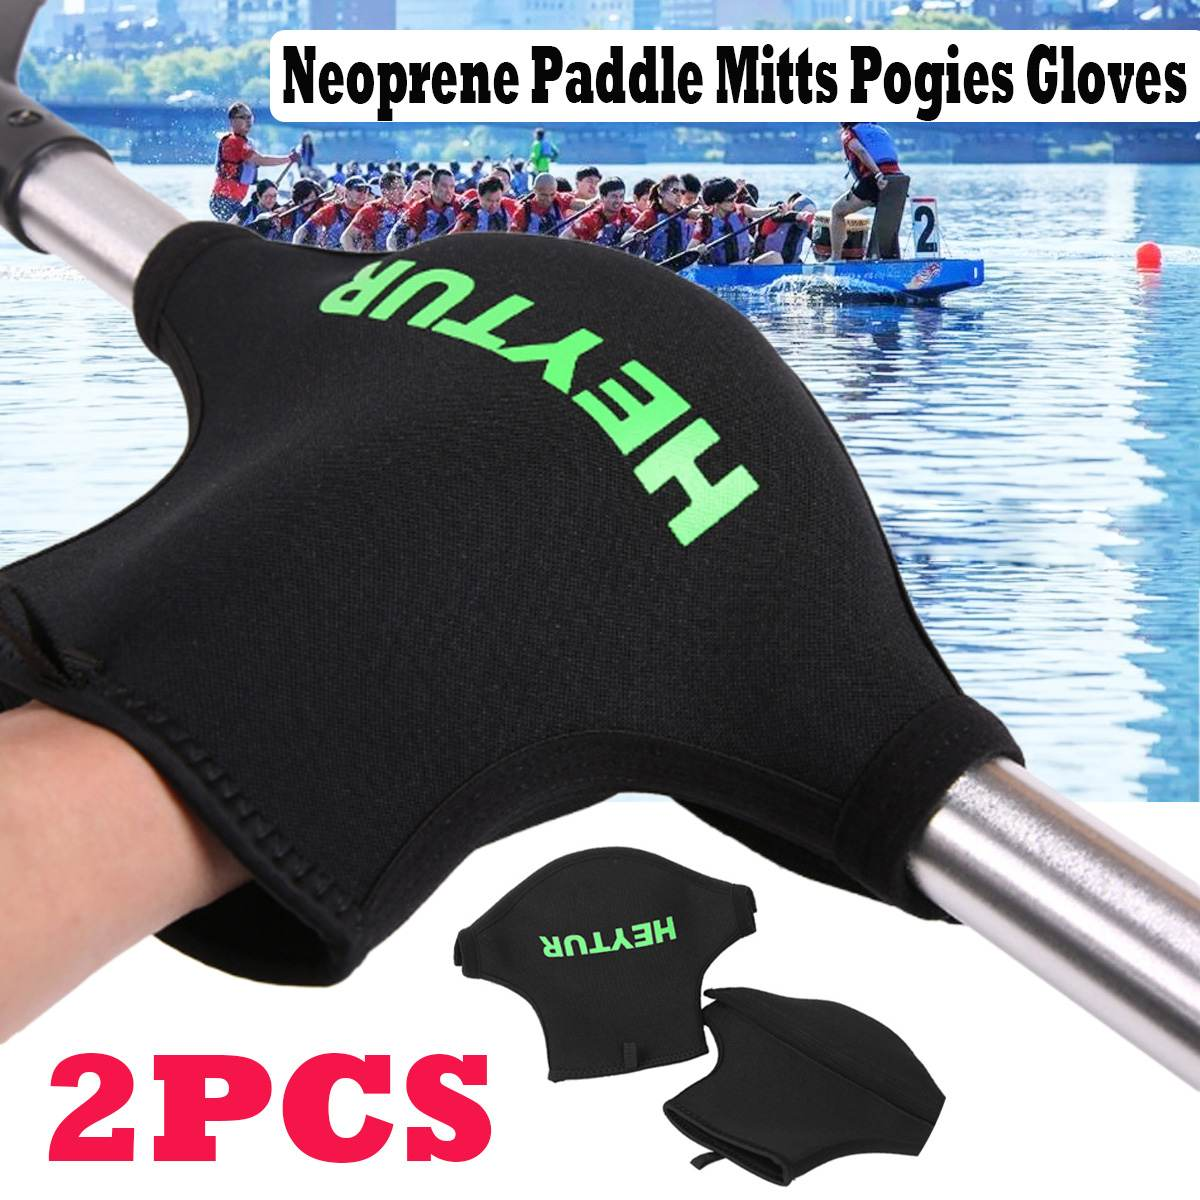 Neoprene Gloves Wear Resistant Anti Slip Kayak Paddle Grips Paddle Mitts For Kayaking Sea Kayak Canoe  Paddle